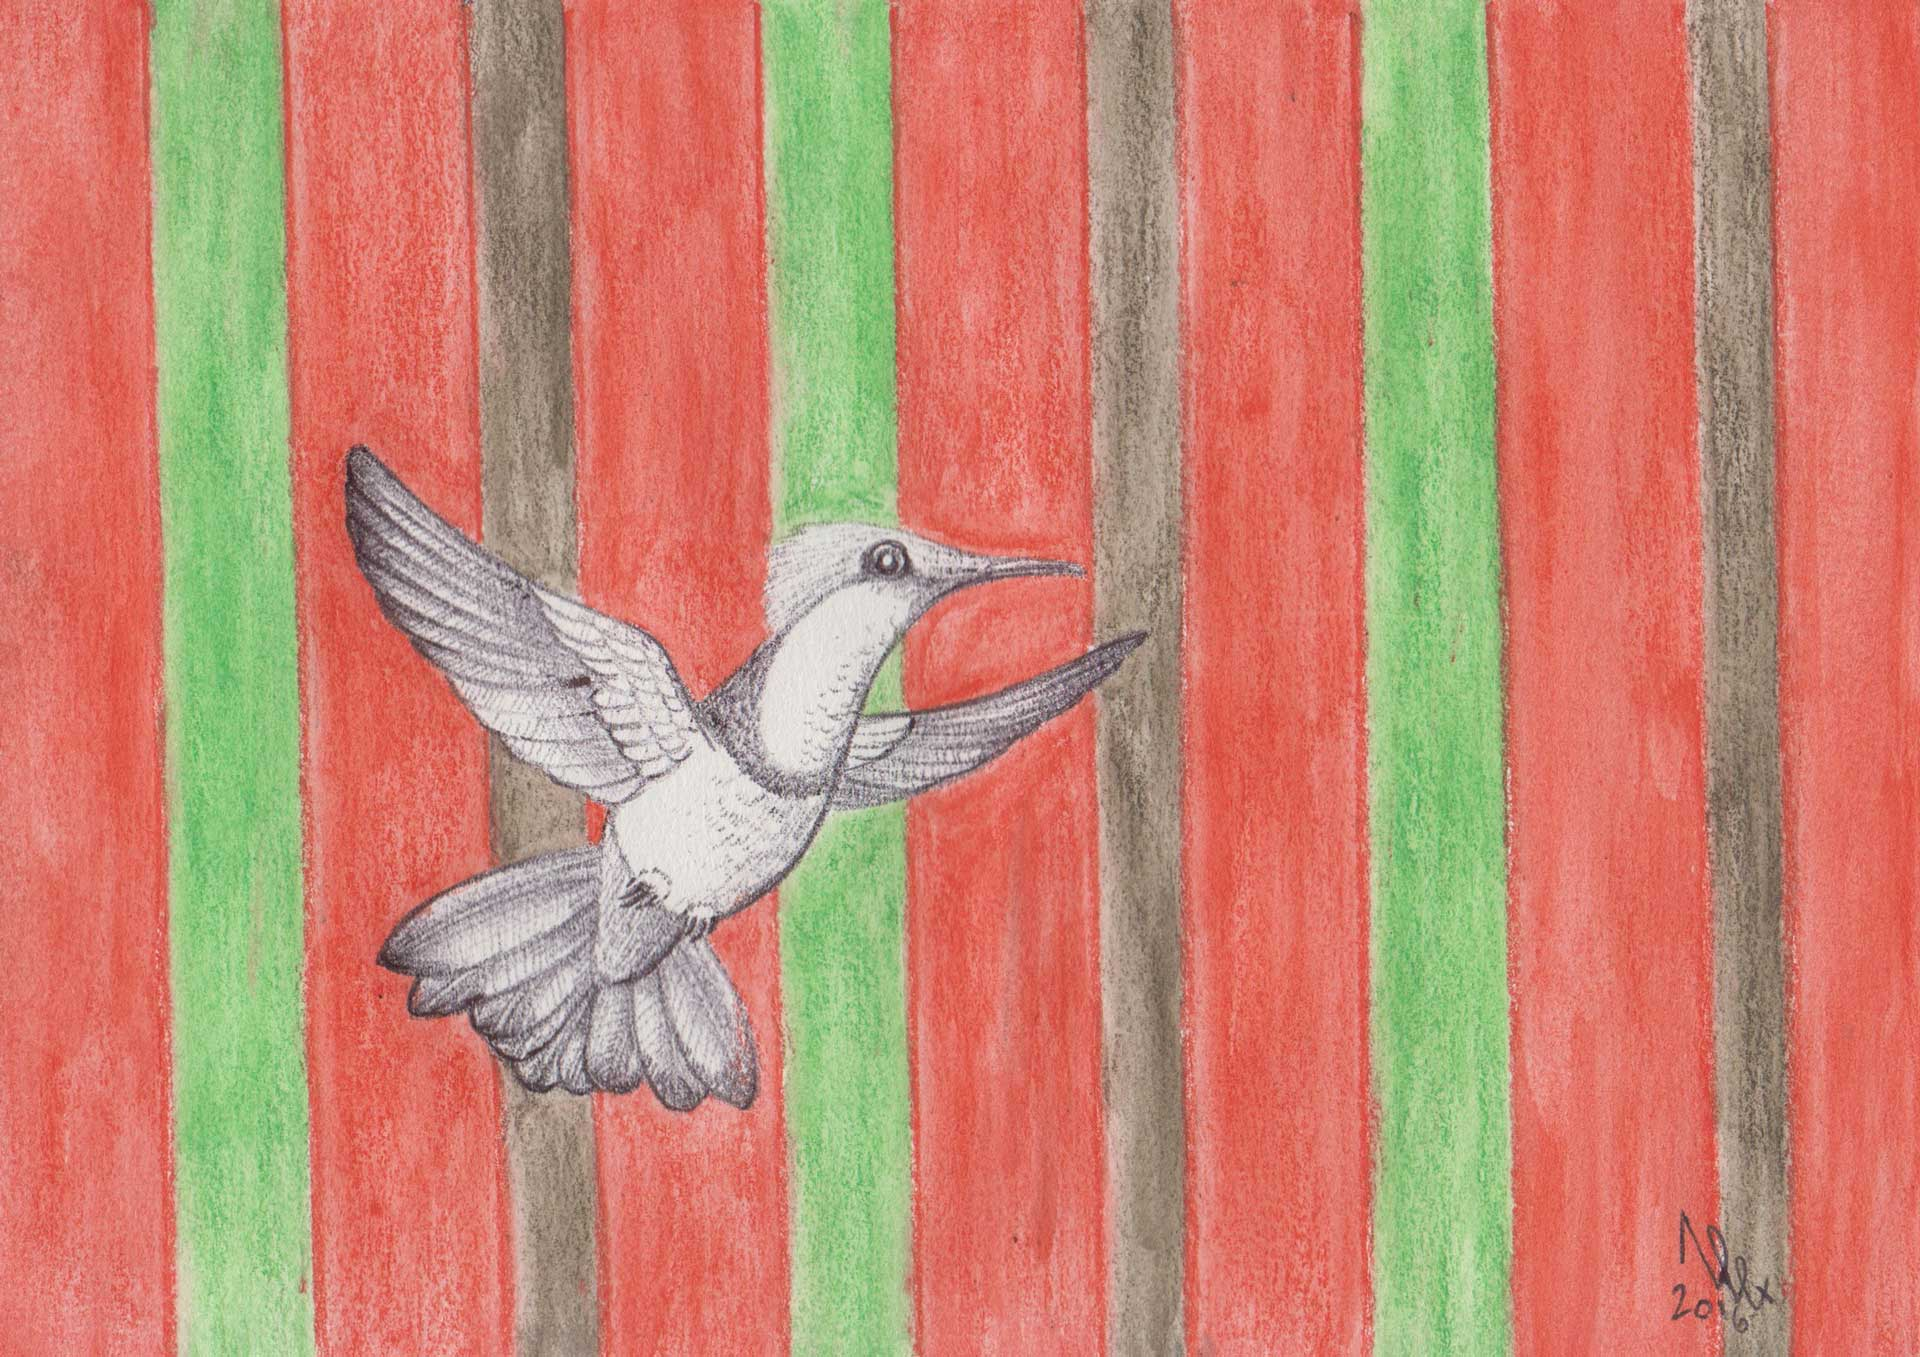 bird 01 painting by Alessandro Bruno.